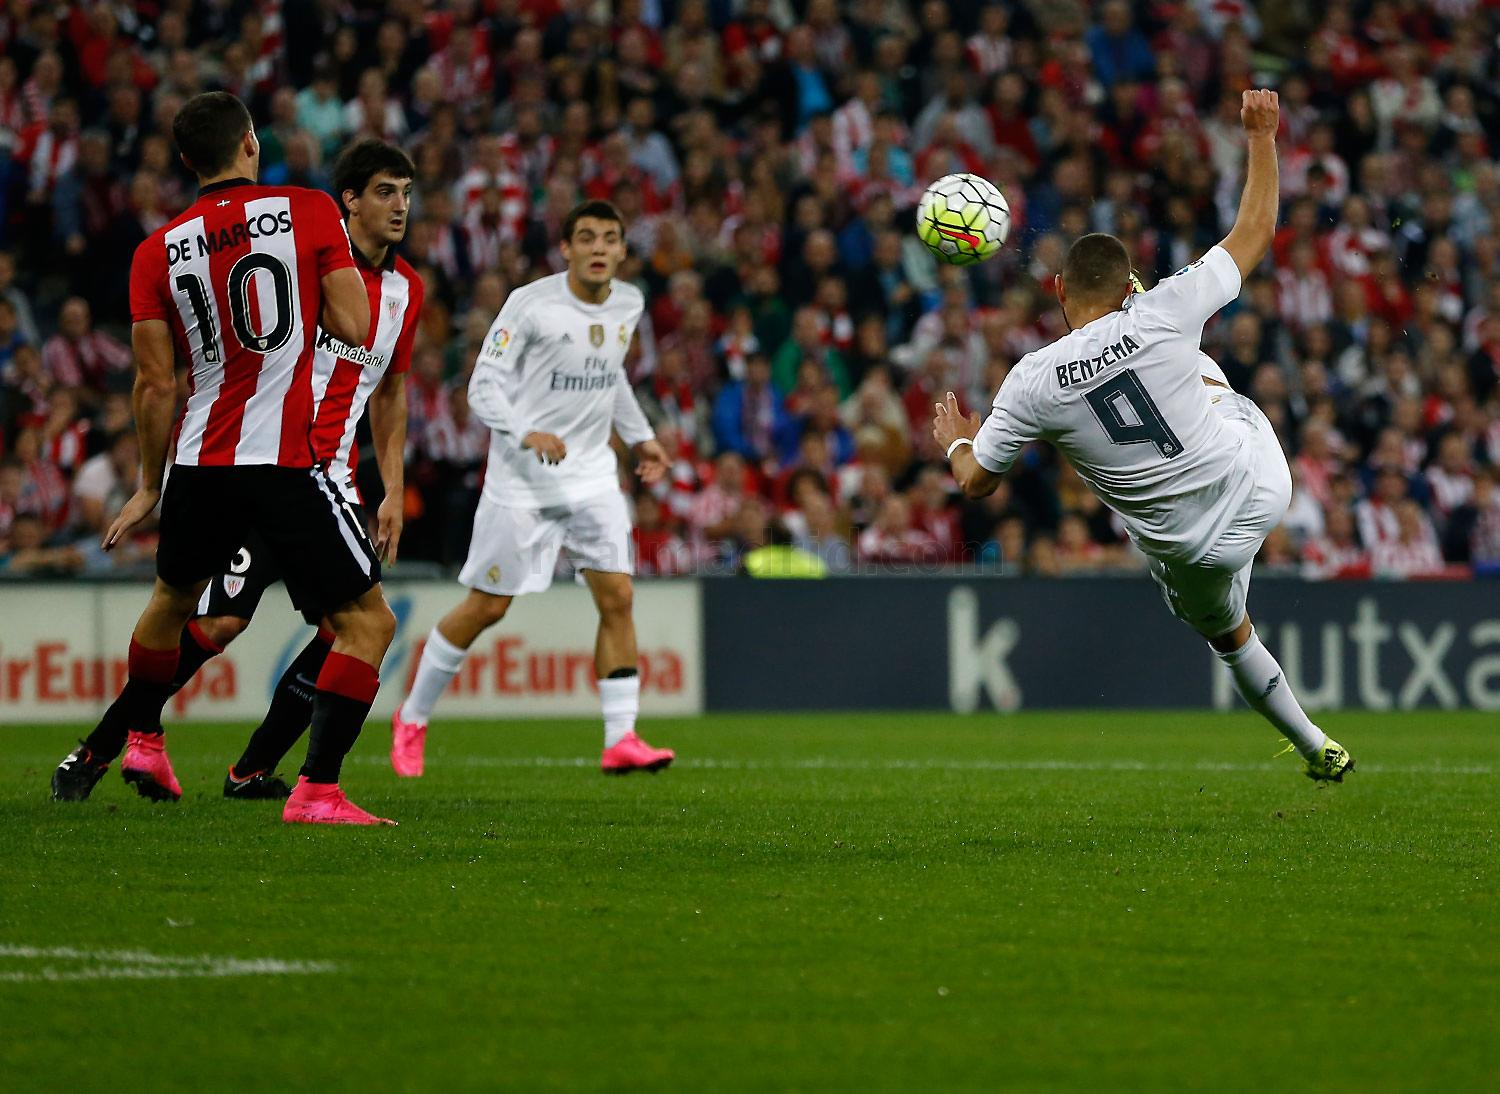 Real Madrid - Athletic Club - Real Madrid - 23-09-2015